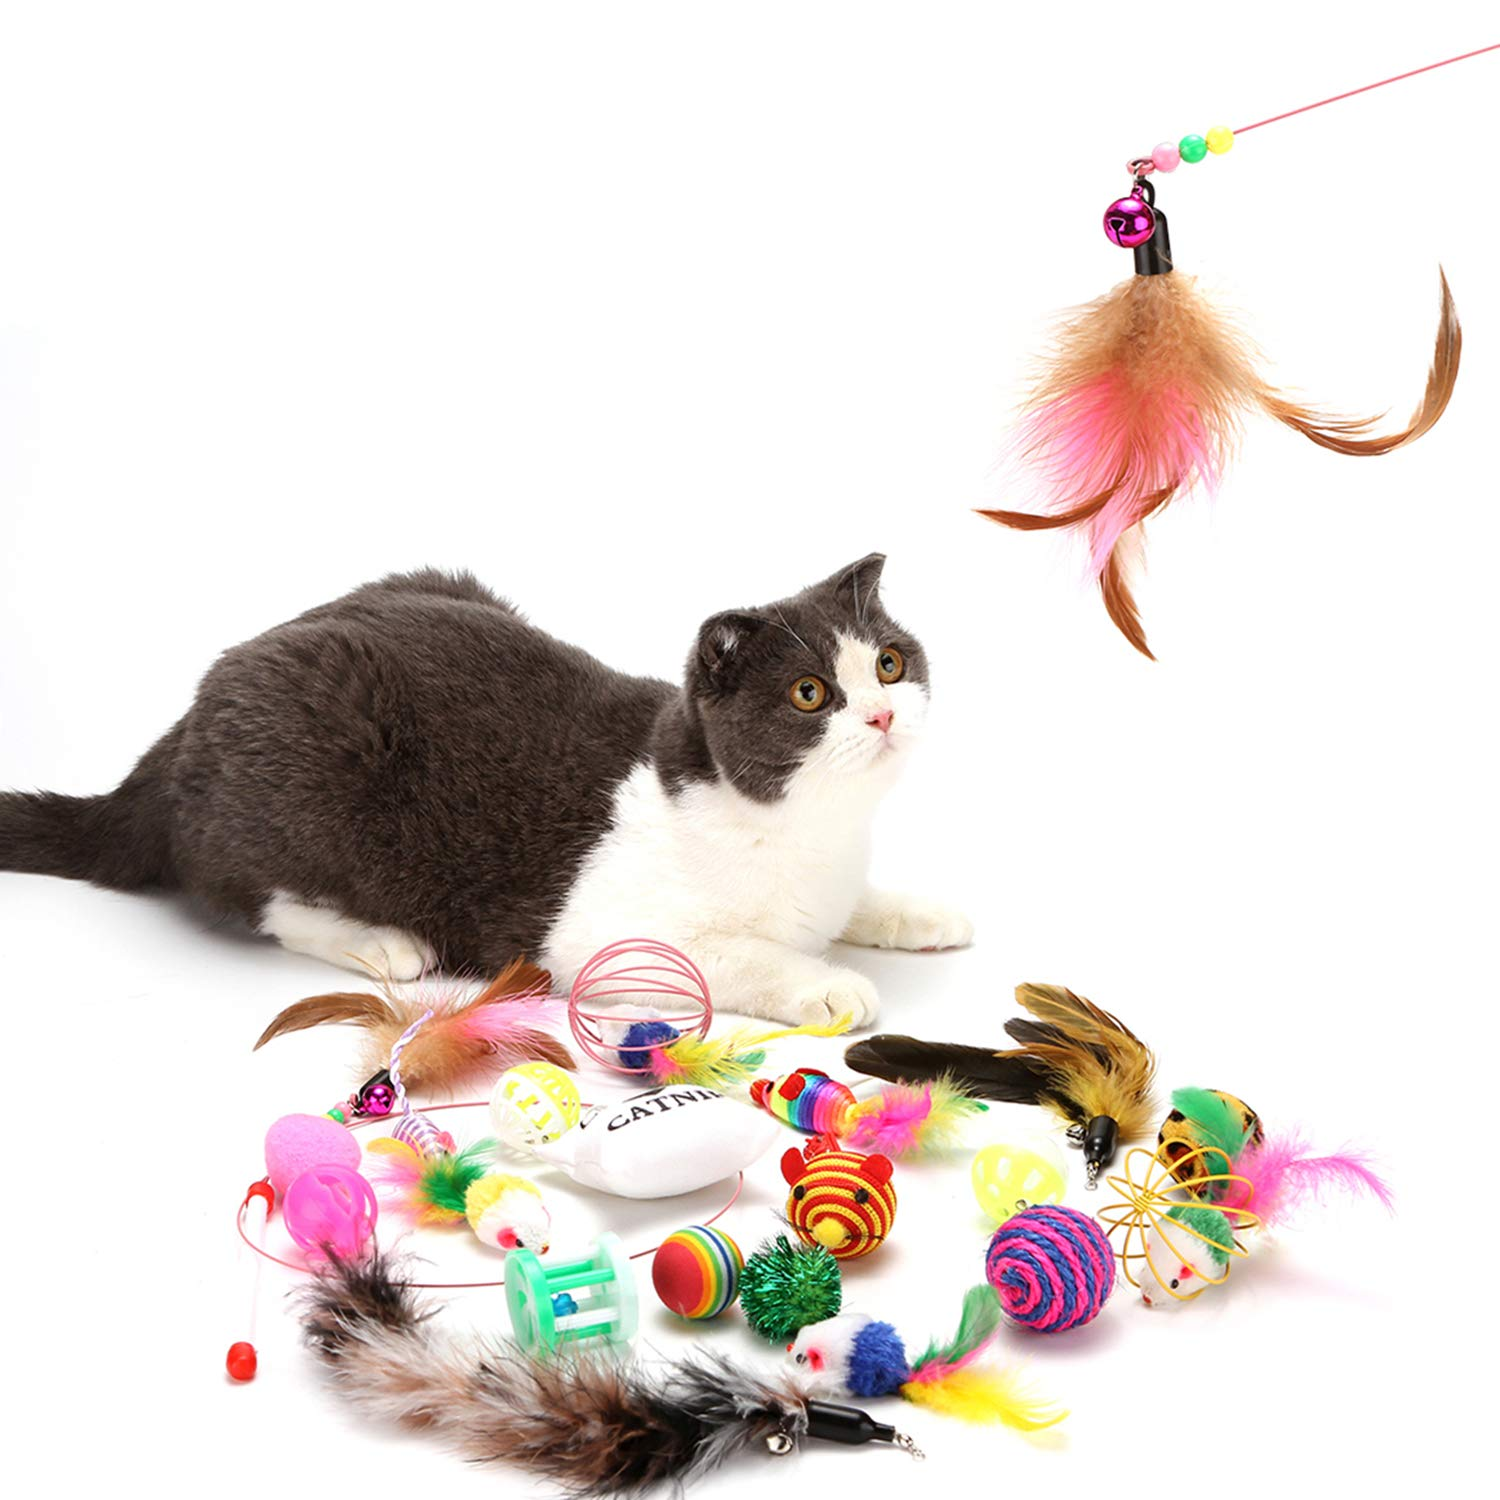 HOLECO Cat Toys Kitten Toys Assortments(20pcs) Feather Teaser Wand,Balls,Feather Toy,Mice Toy Interactive Toys Set for Indoor Cats Gifts for Cat Puppy Crinkle Balls